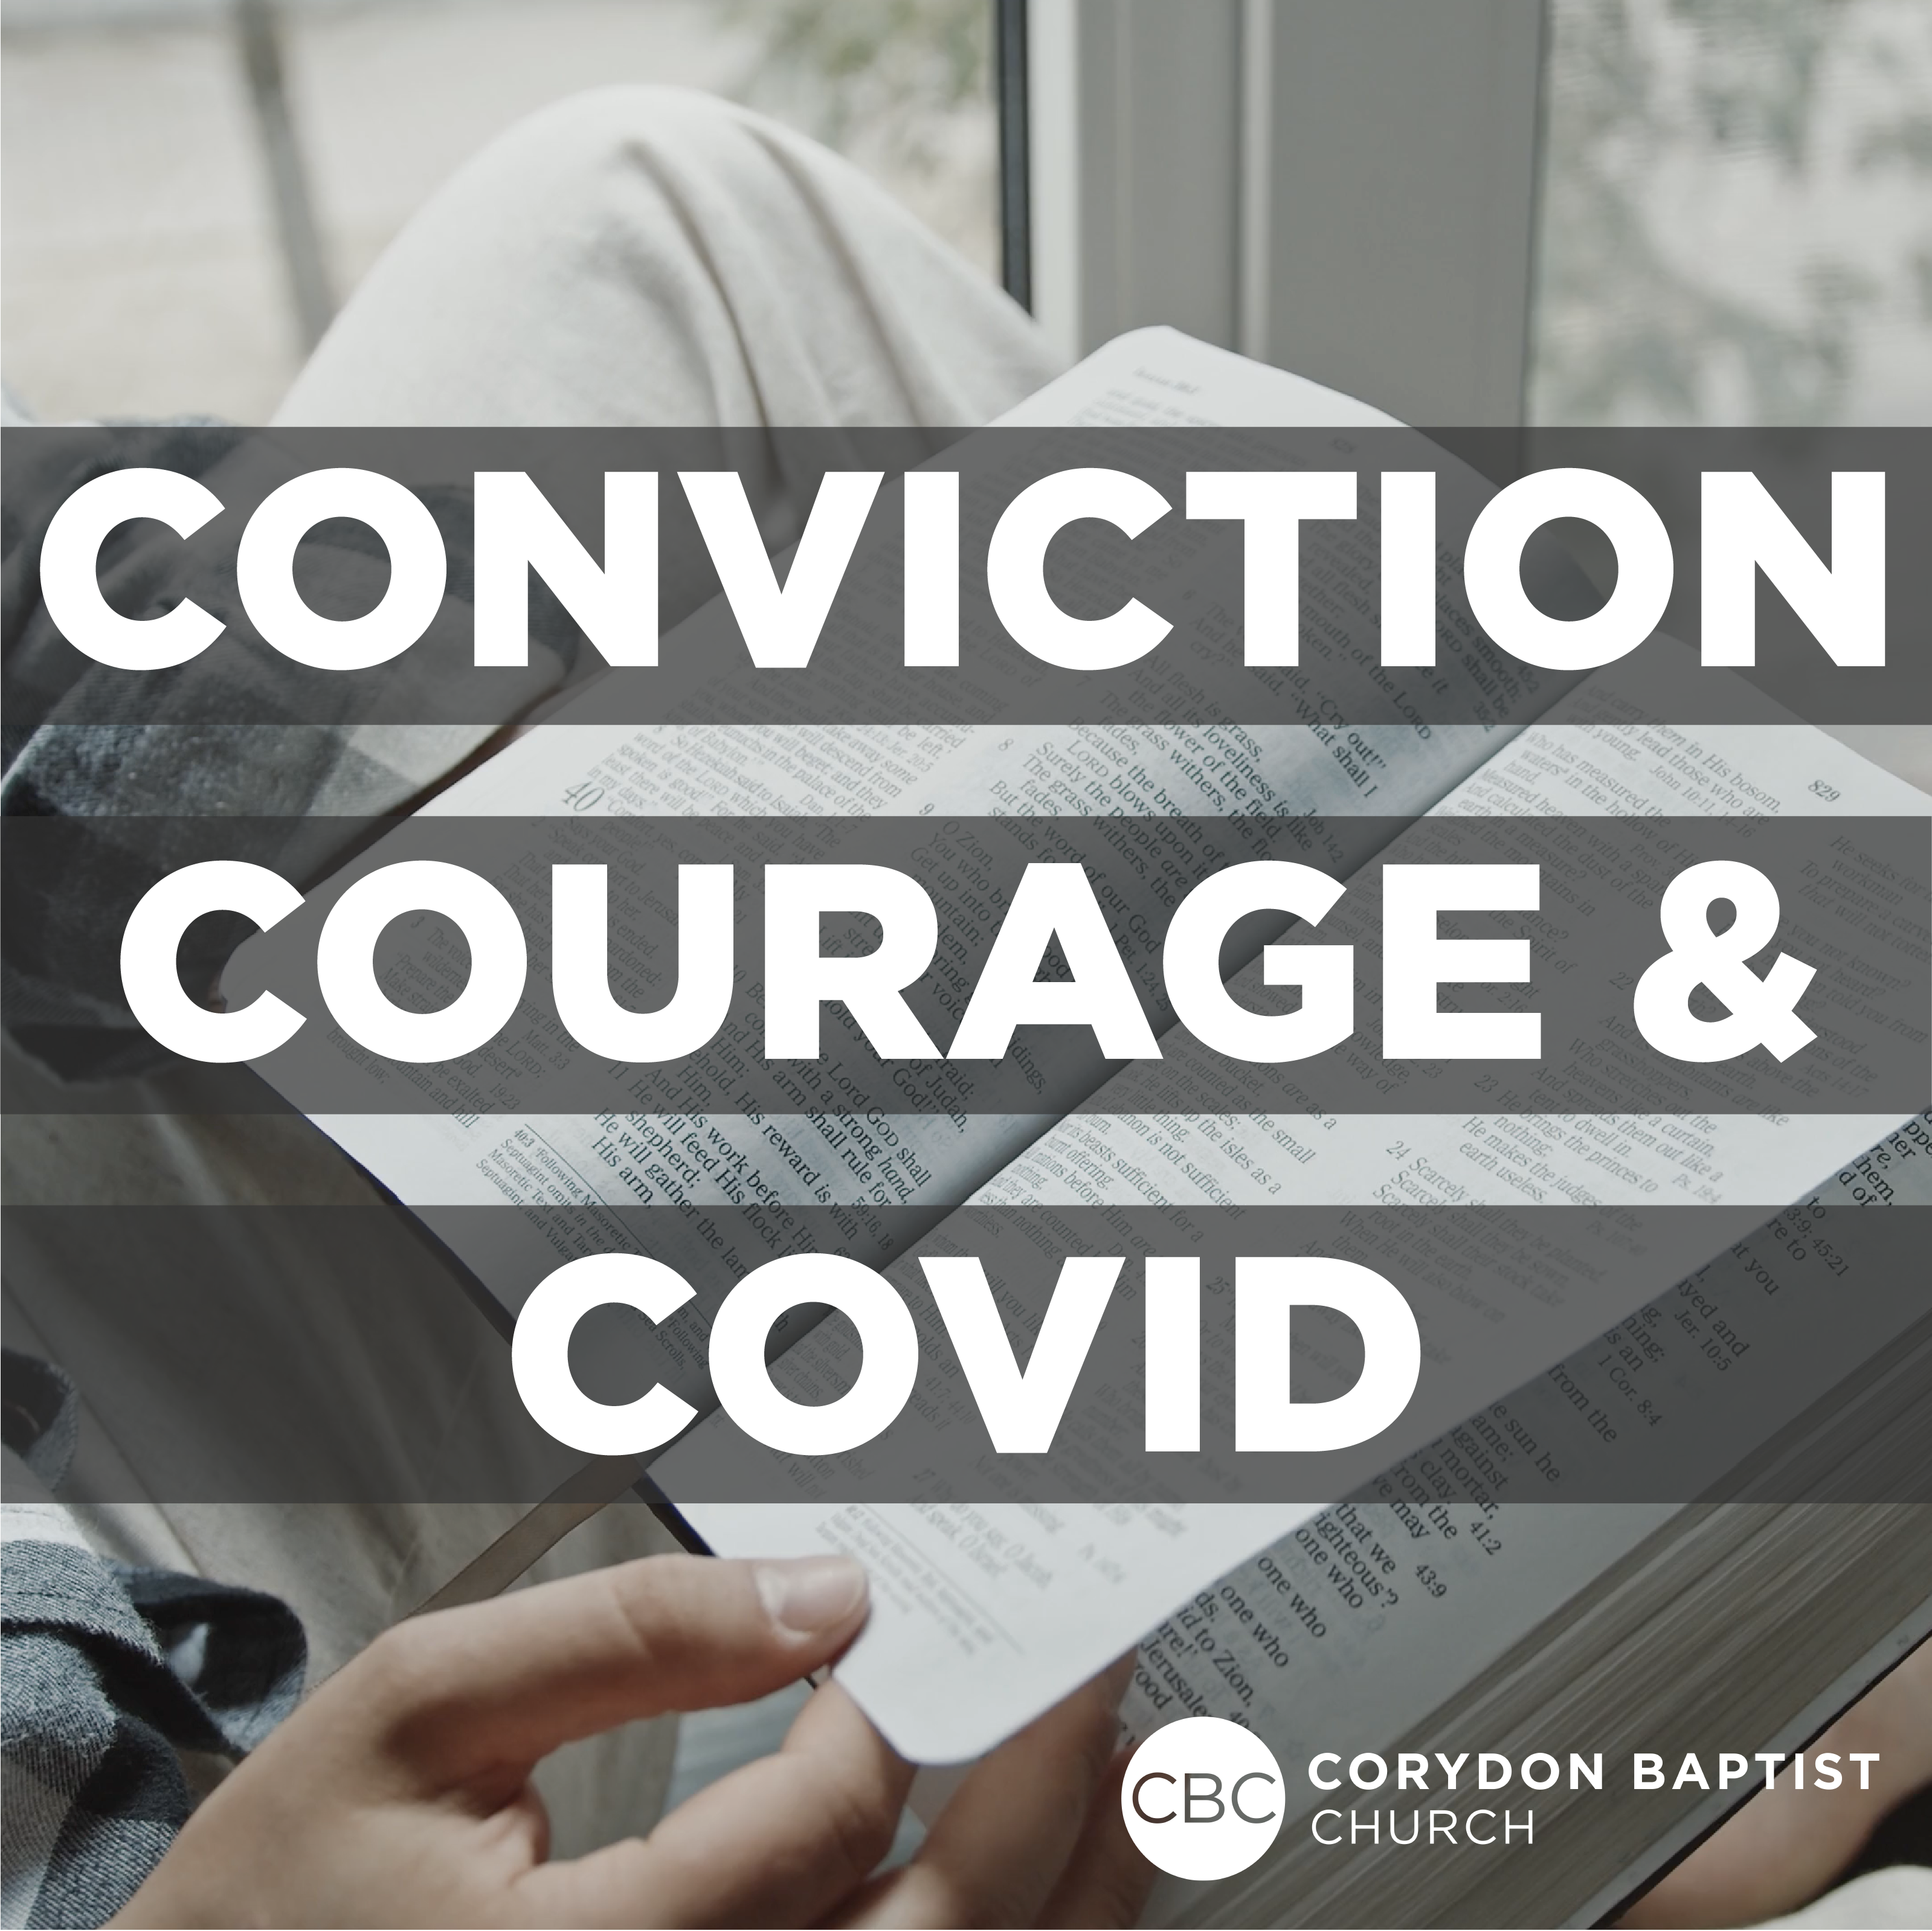 Conviction-Courage-Covid